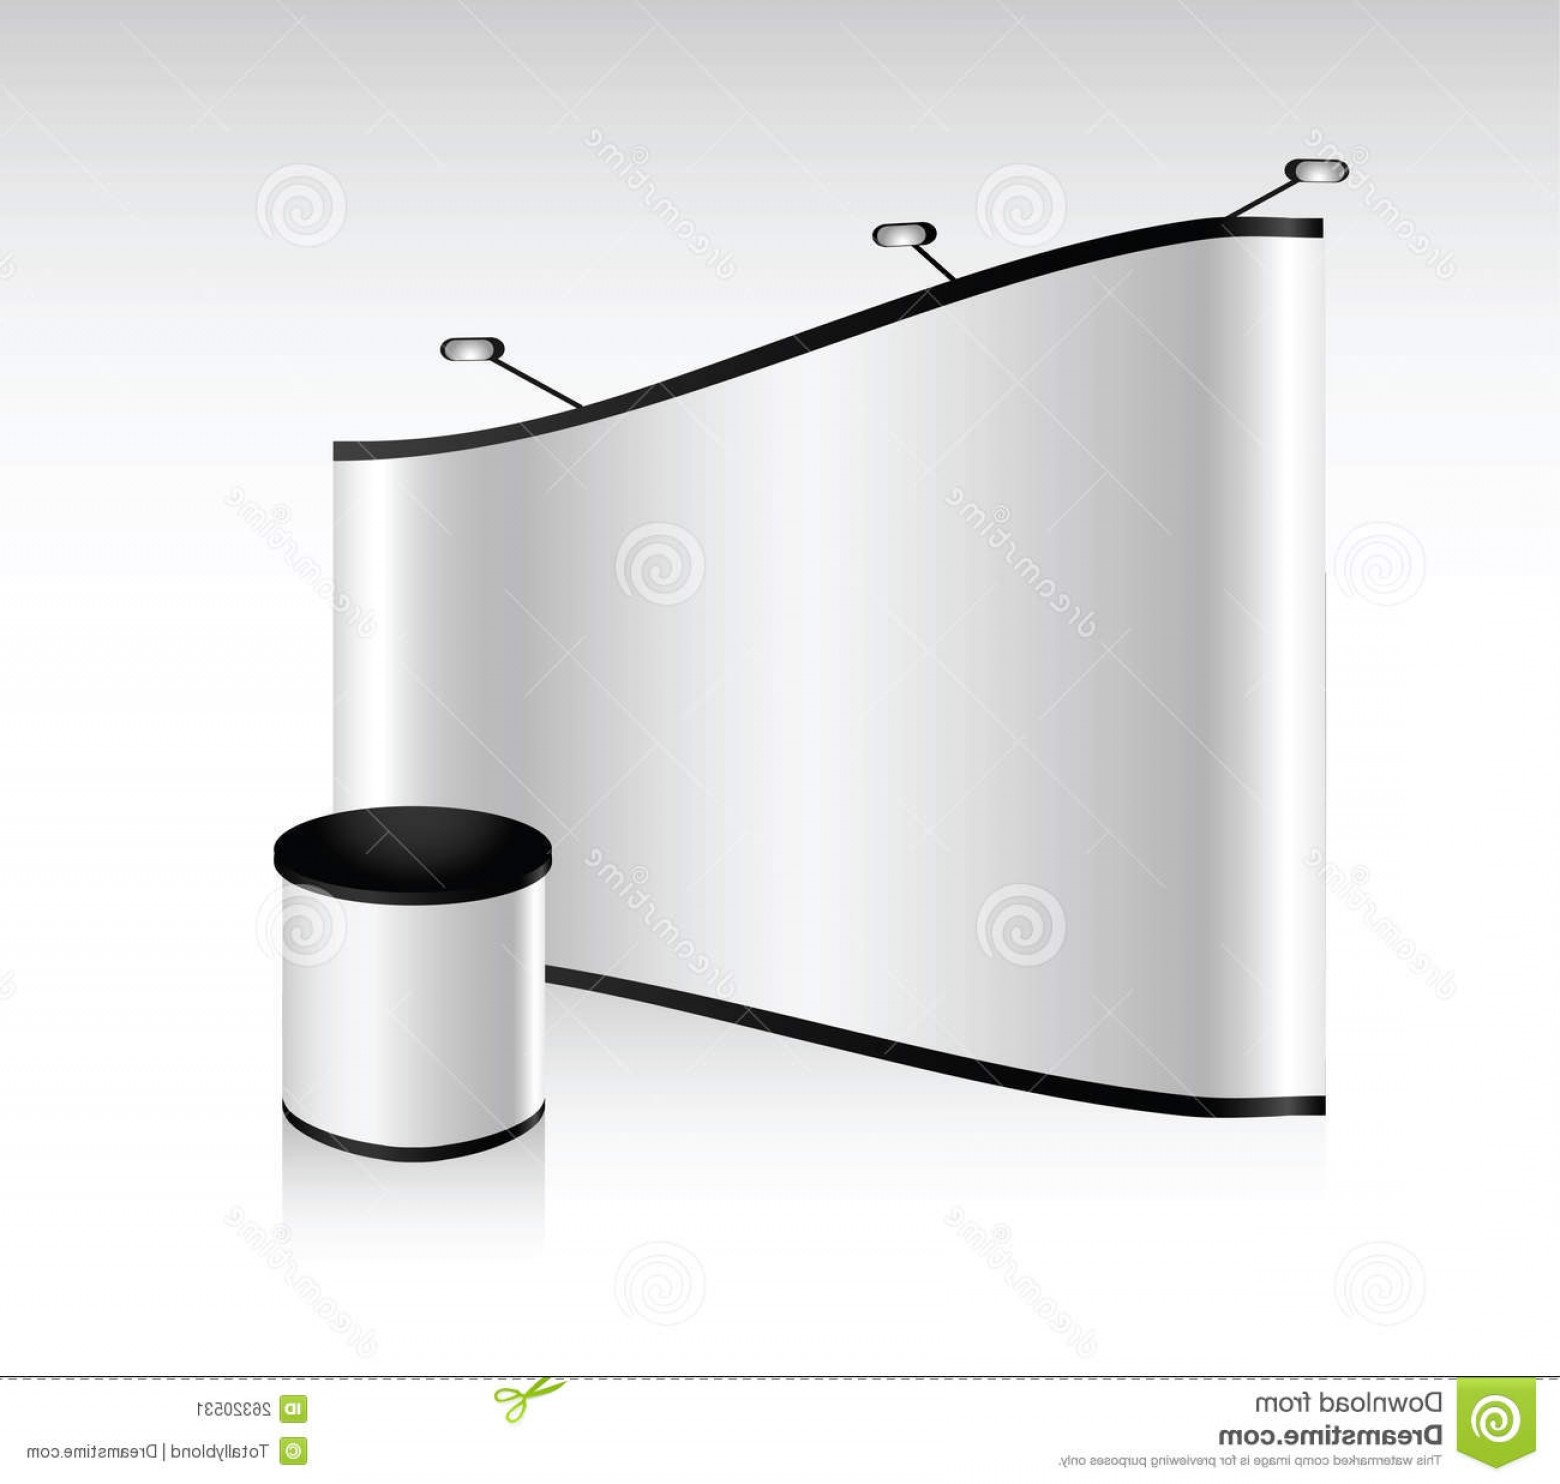 Commercial Booth Vector: Stock Image Vector Blank Trade Show Booth Image